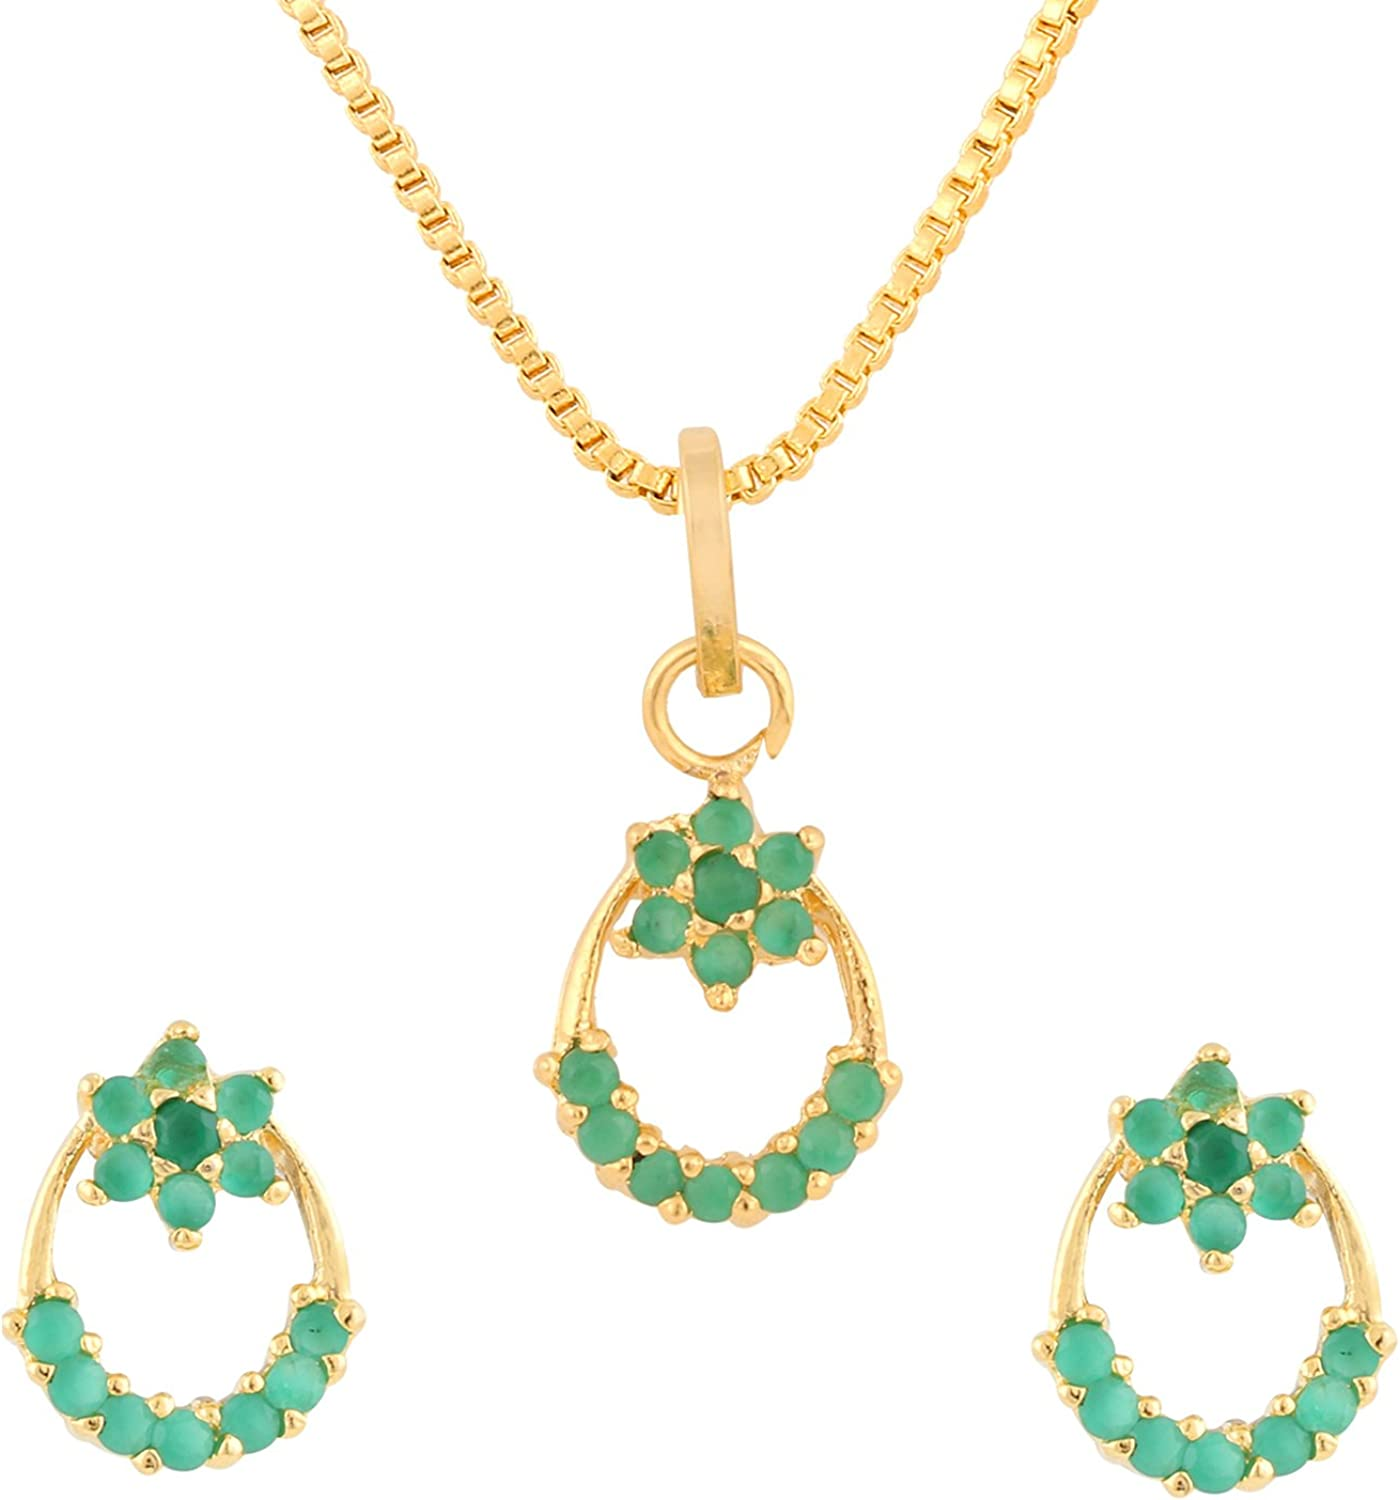 Efulgenz Fashion Jewelry Set Gold Plated Cubic Zirconia Pendant Necklace Set with Earrings for Women and Girls Brides and Bridesmaid